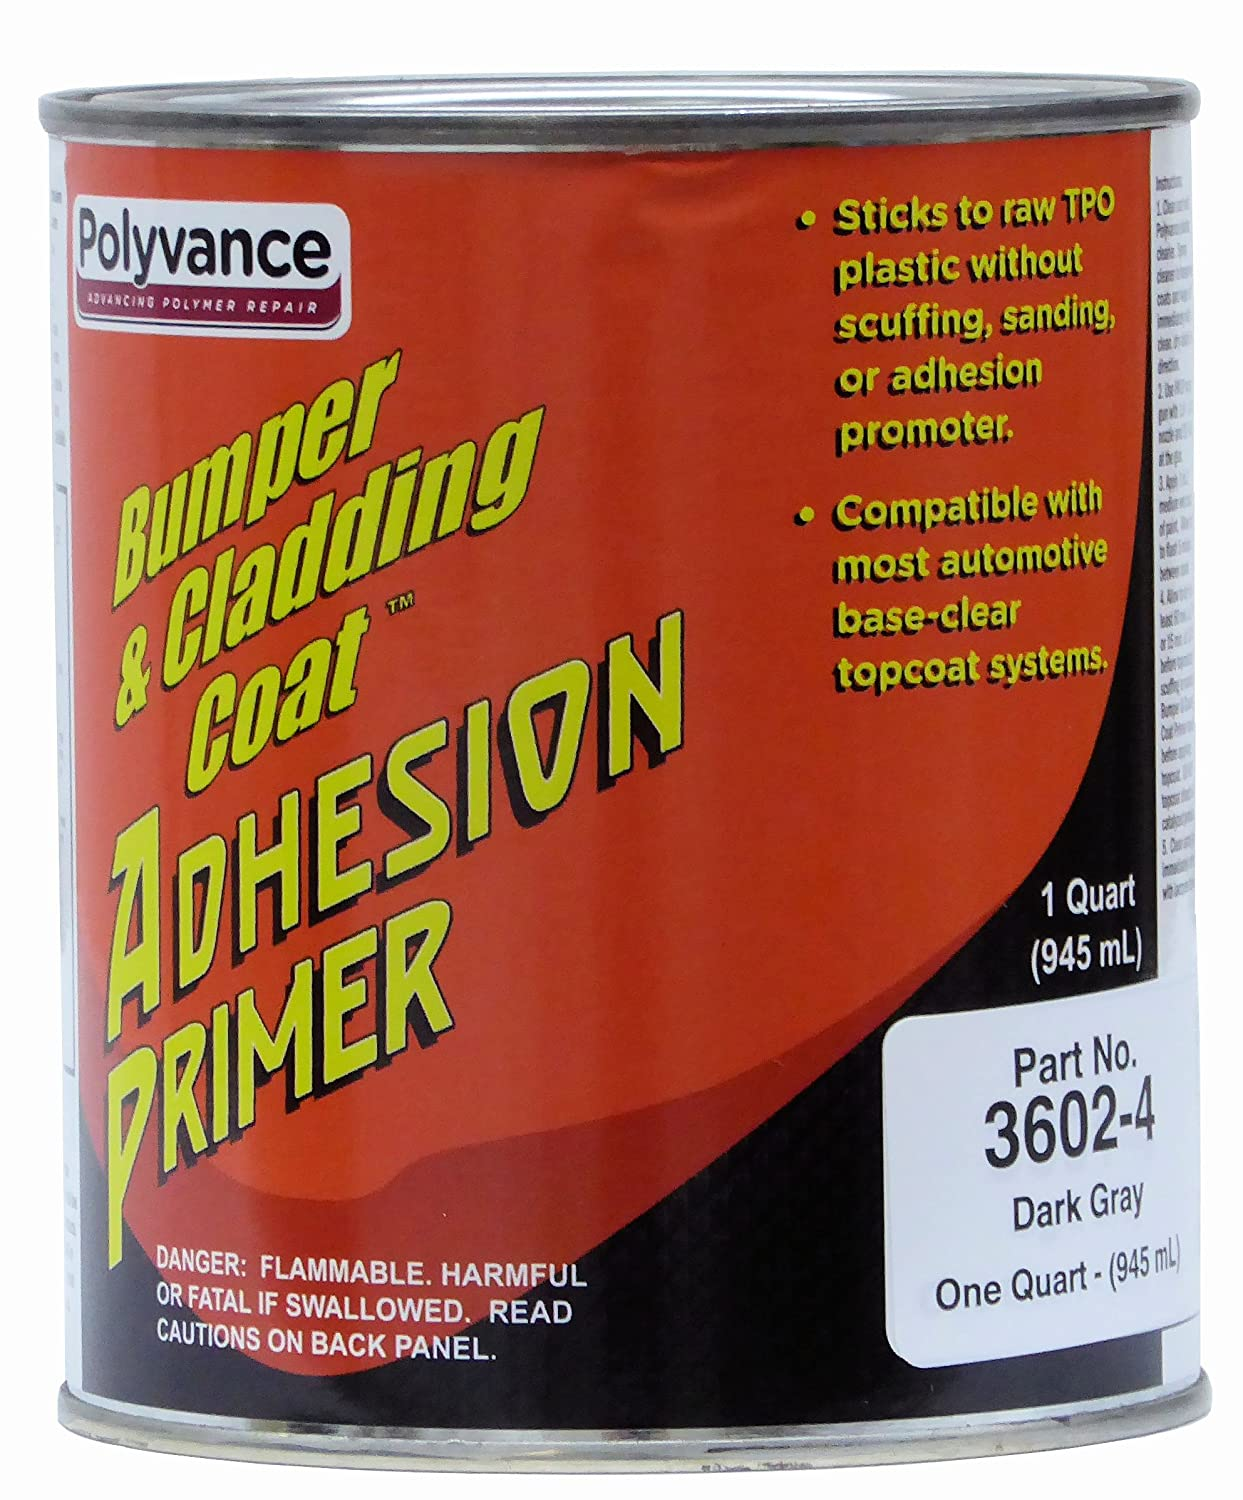 Bumper and Cladding Adhesion Coat Primer - Dark Gray, Qt Polyvance